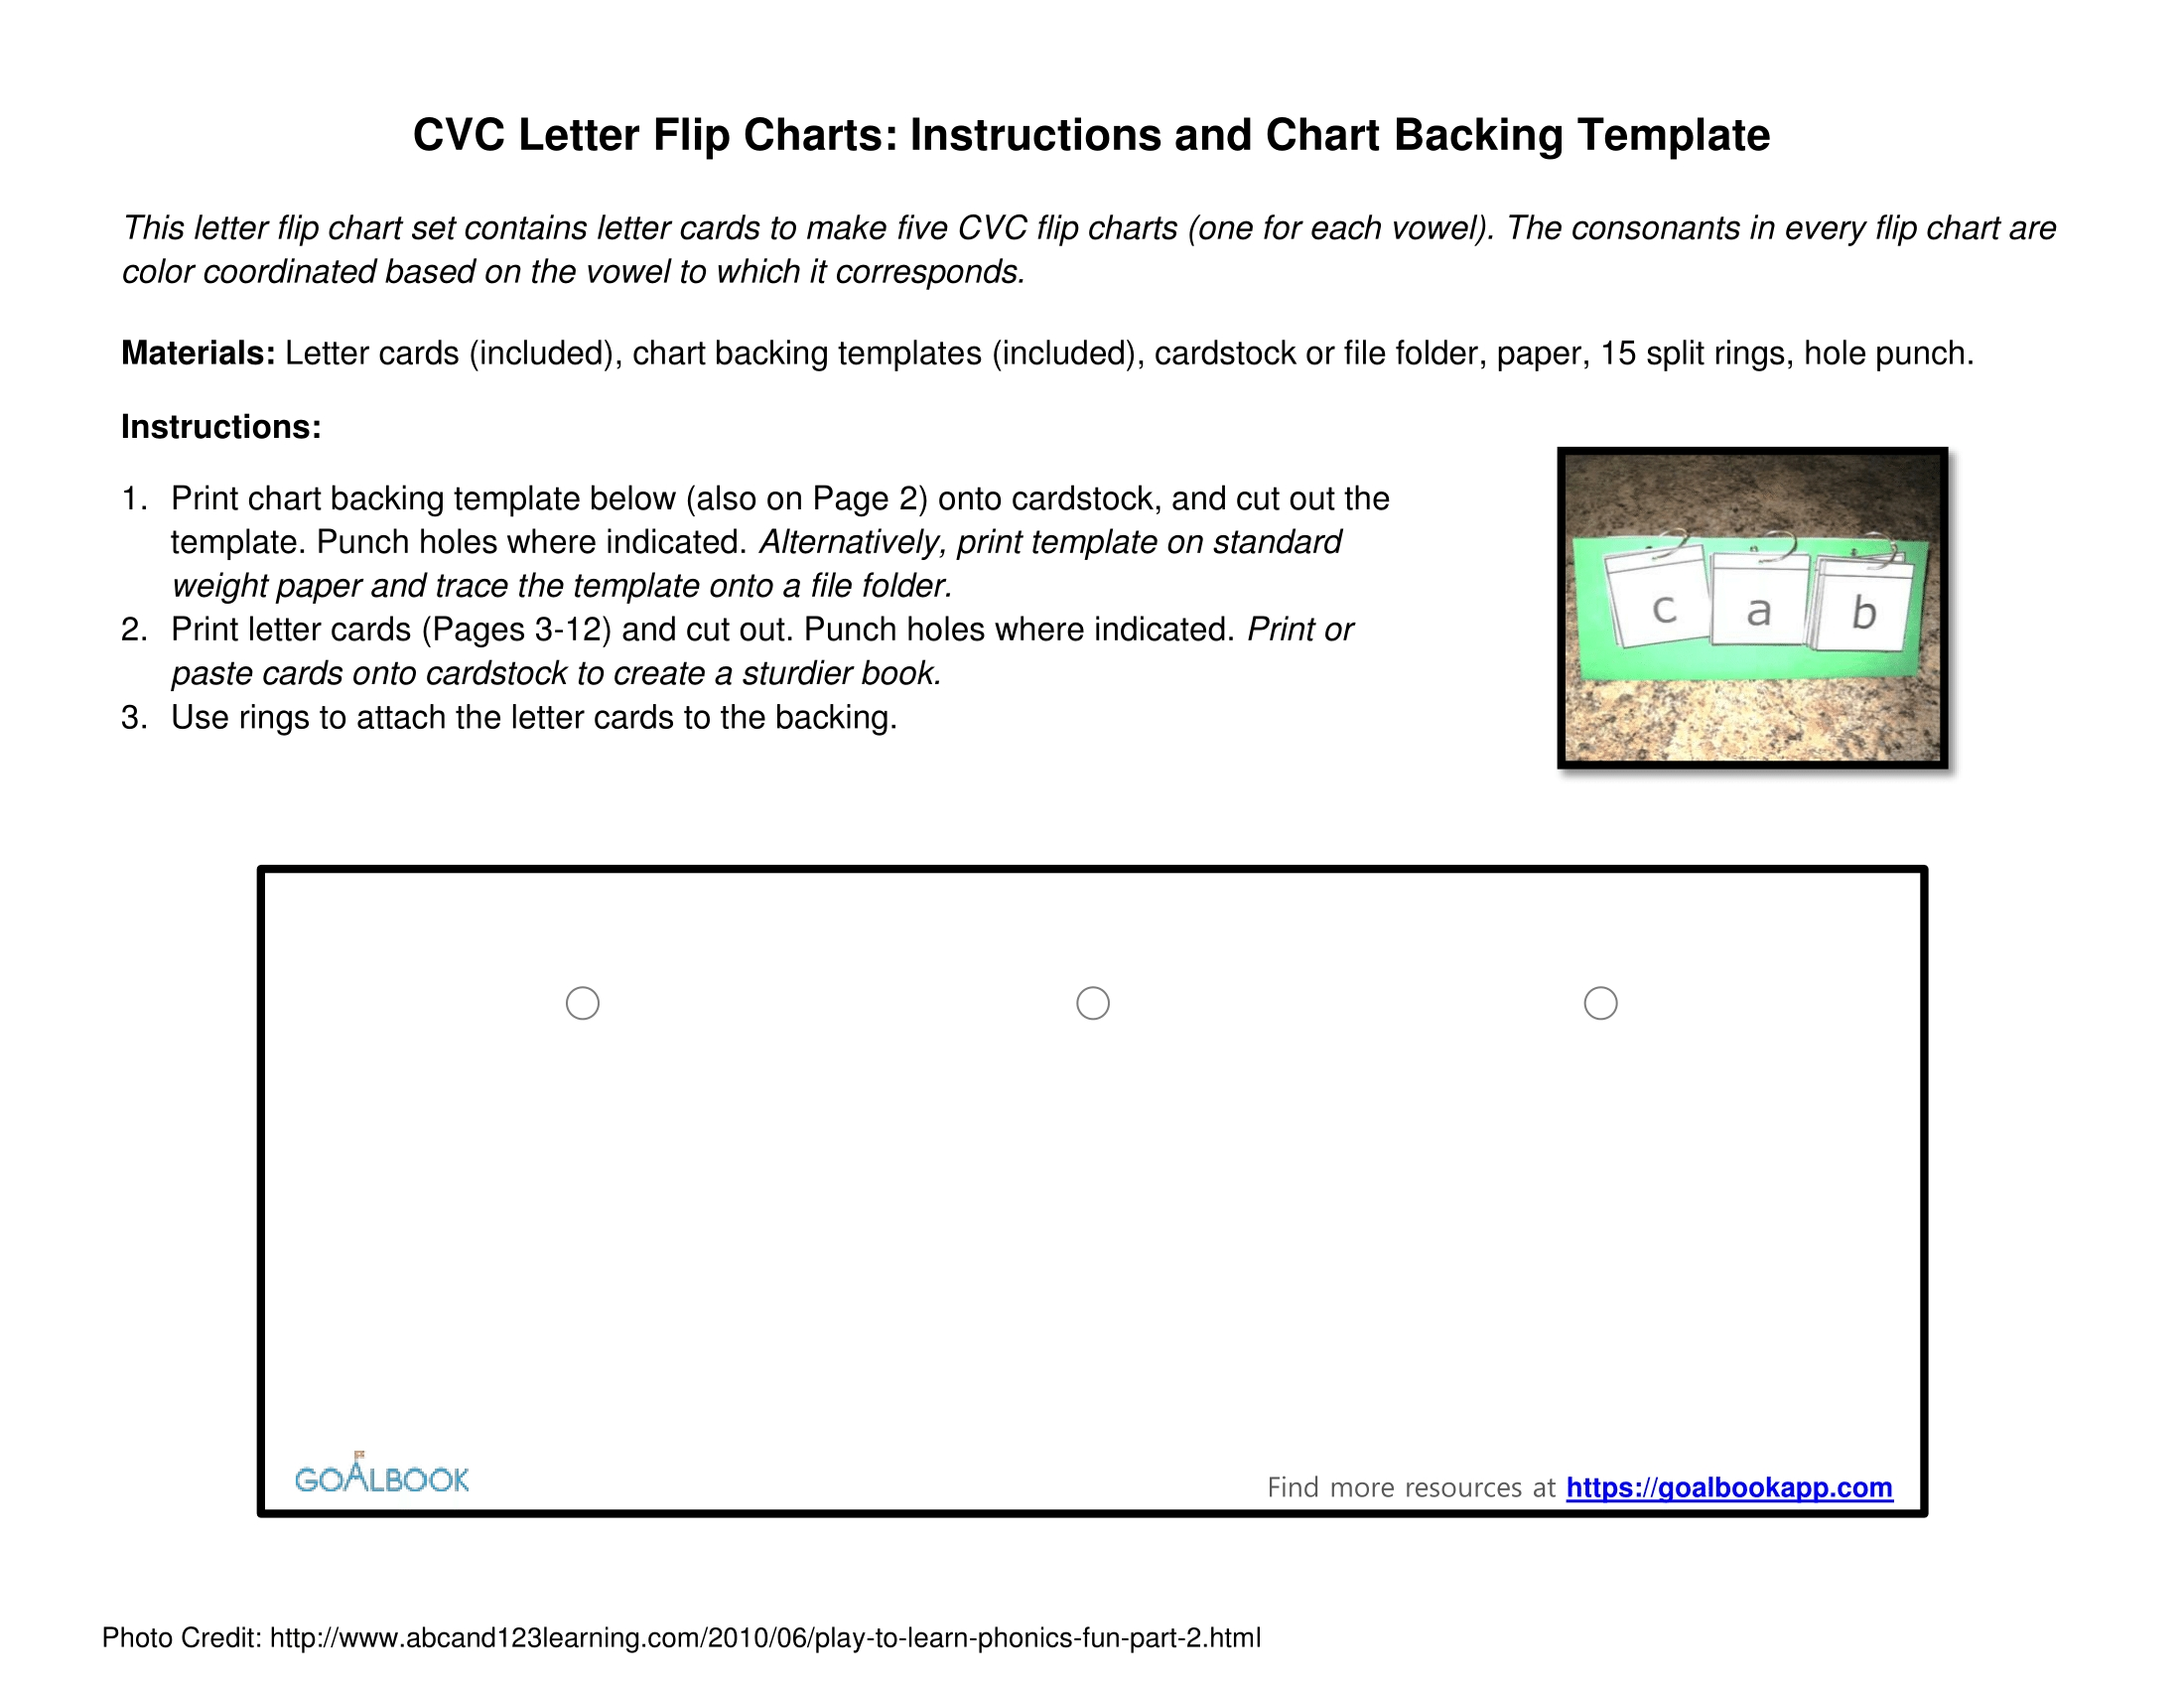 Word Wheels And Letter Flip Charts | Udl Strategies  Flip Chart Template For Word